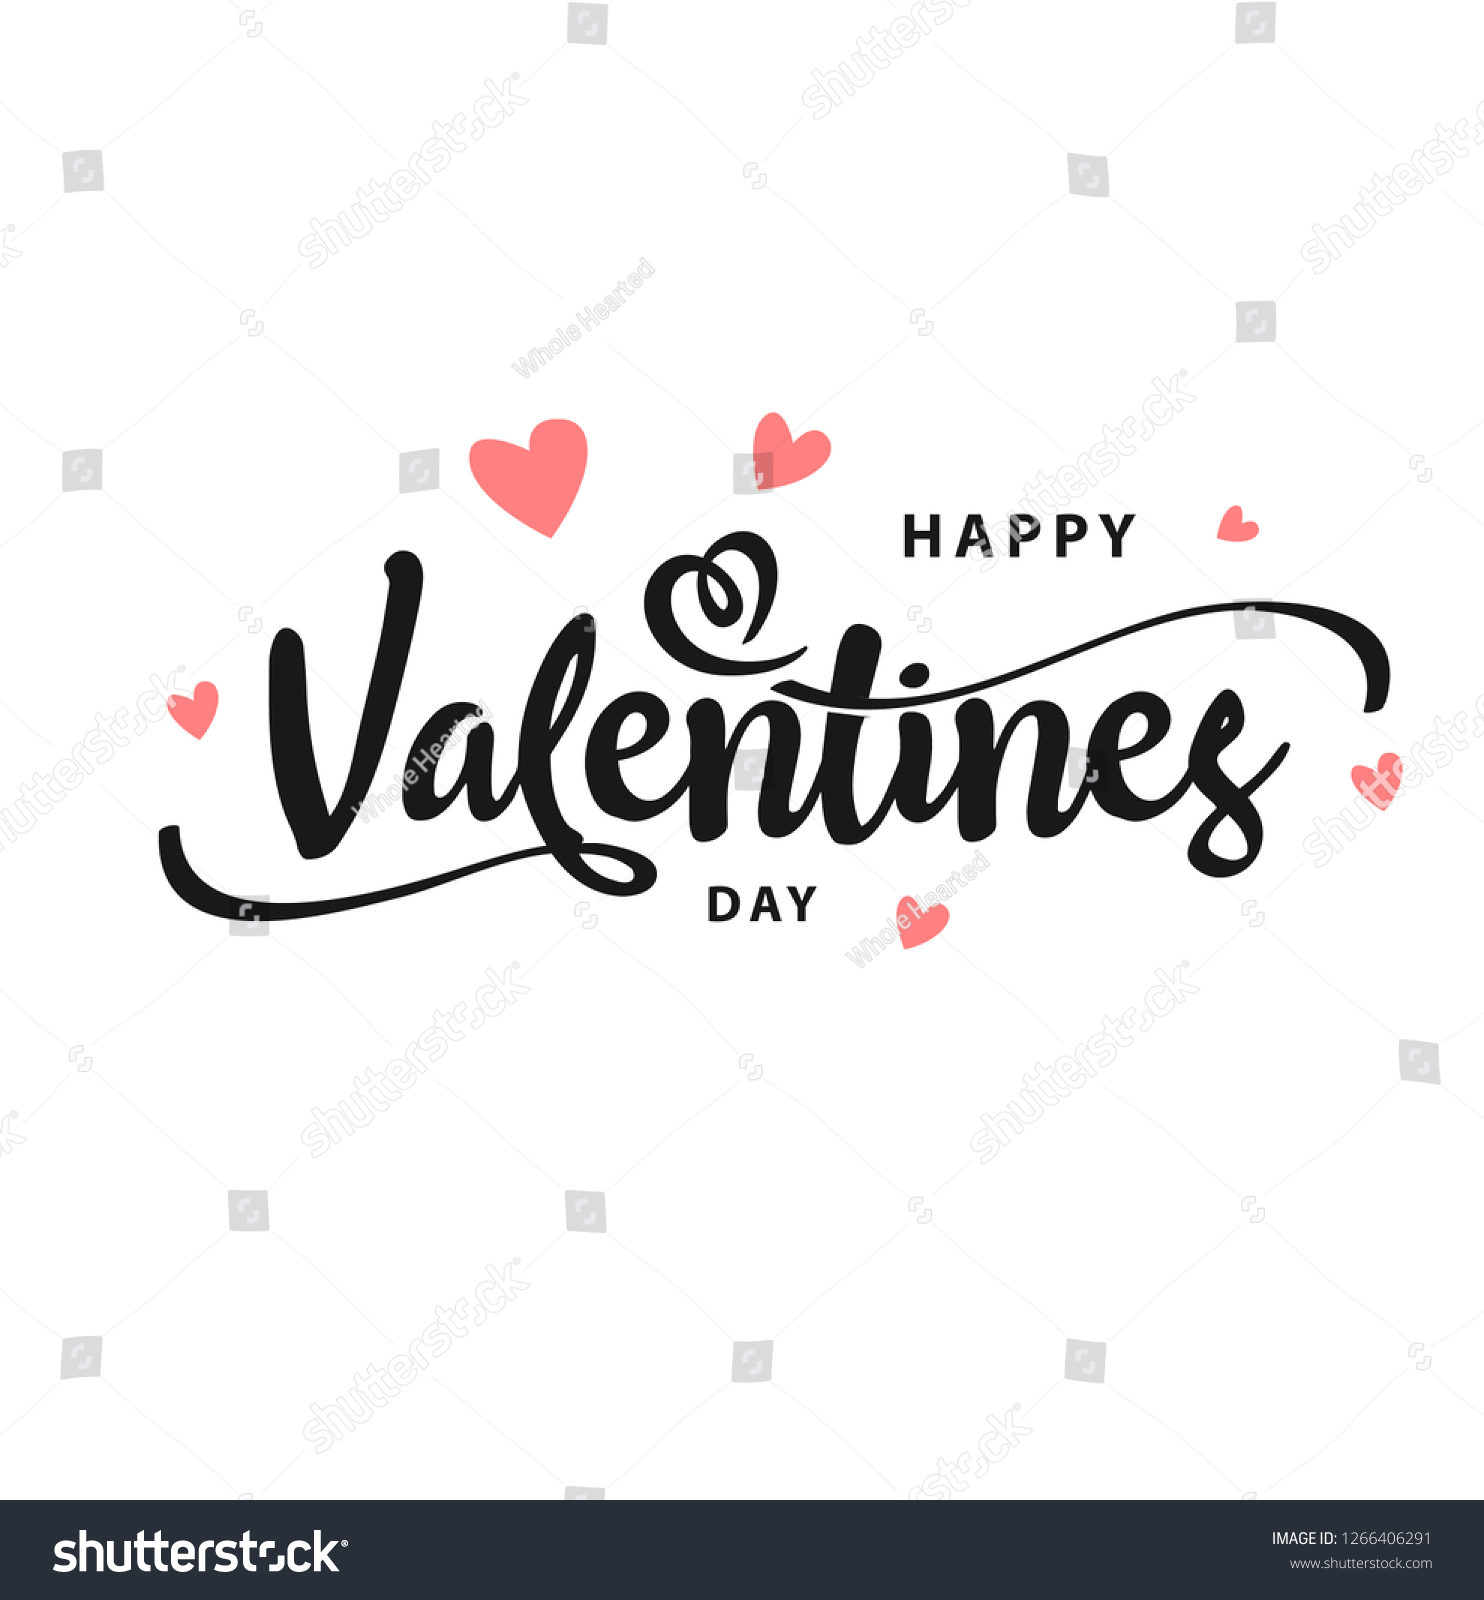 Happy Valentines Day typography poster with handwritten calligraphy text, isolated on white background. Vector Illustration - Vector #1266406291